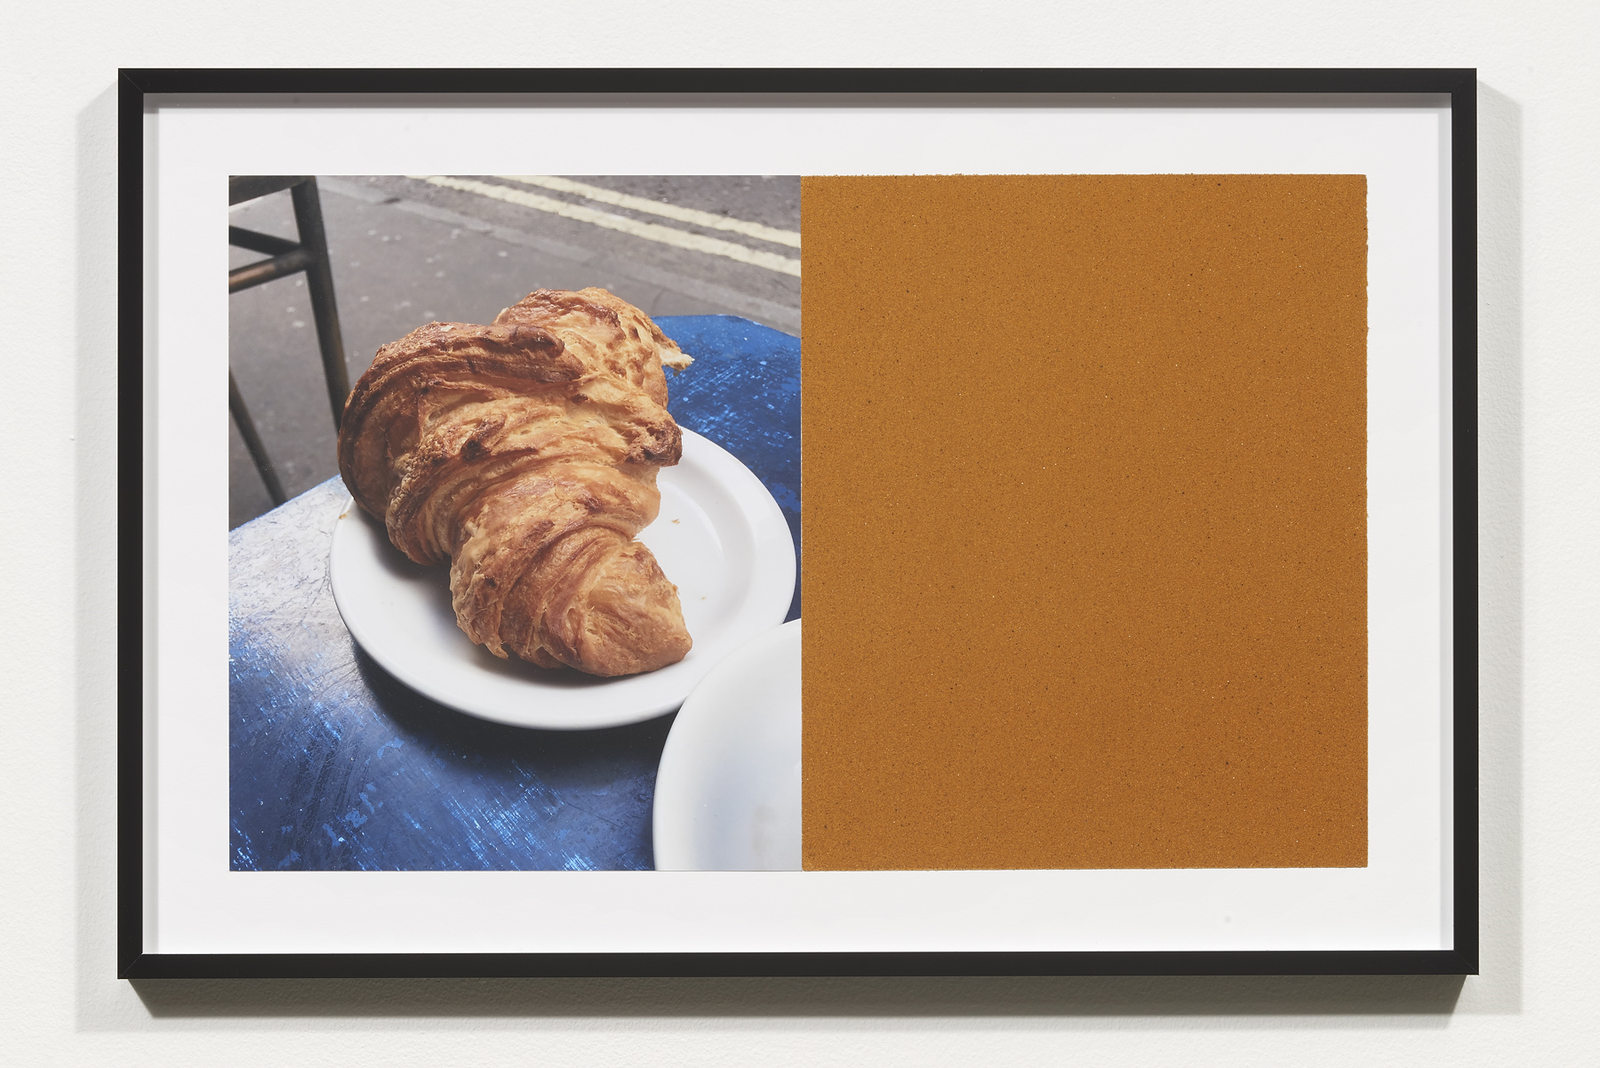 Wermers_Croissants & Architecture #7, 2016_C-print, sandpaper sheet, framed_14 3_8 x 21 1_2 in_NW00048PG